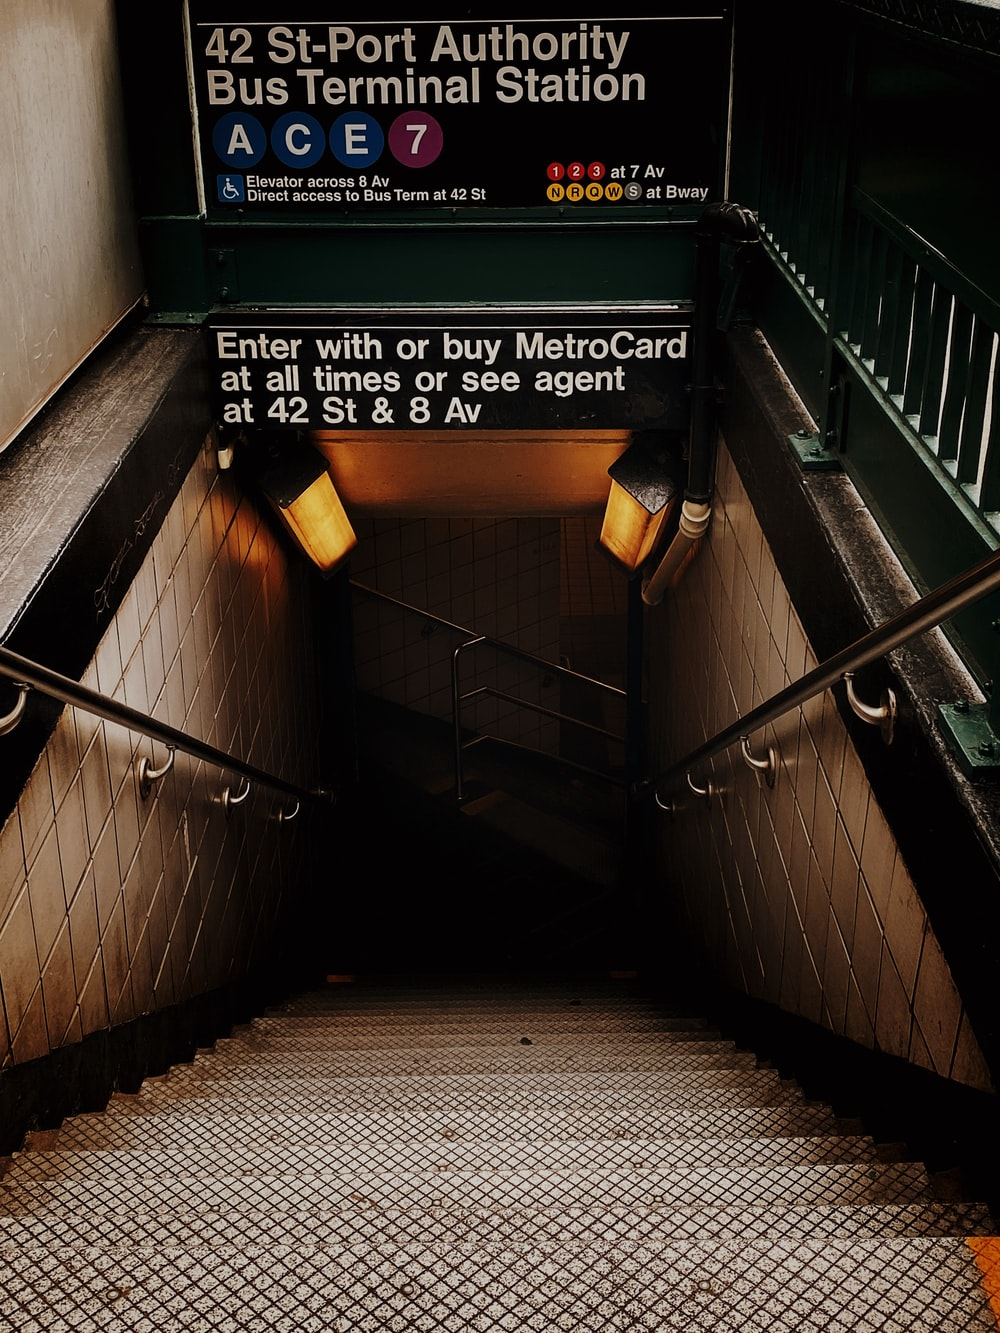 black and white staircase with green and yellow wooden signage